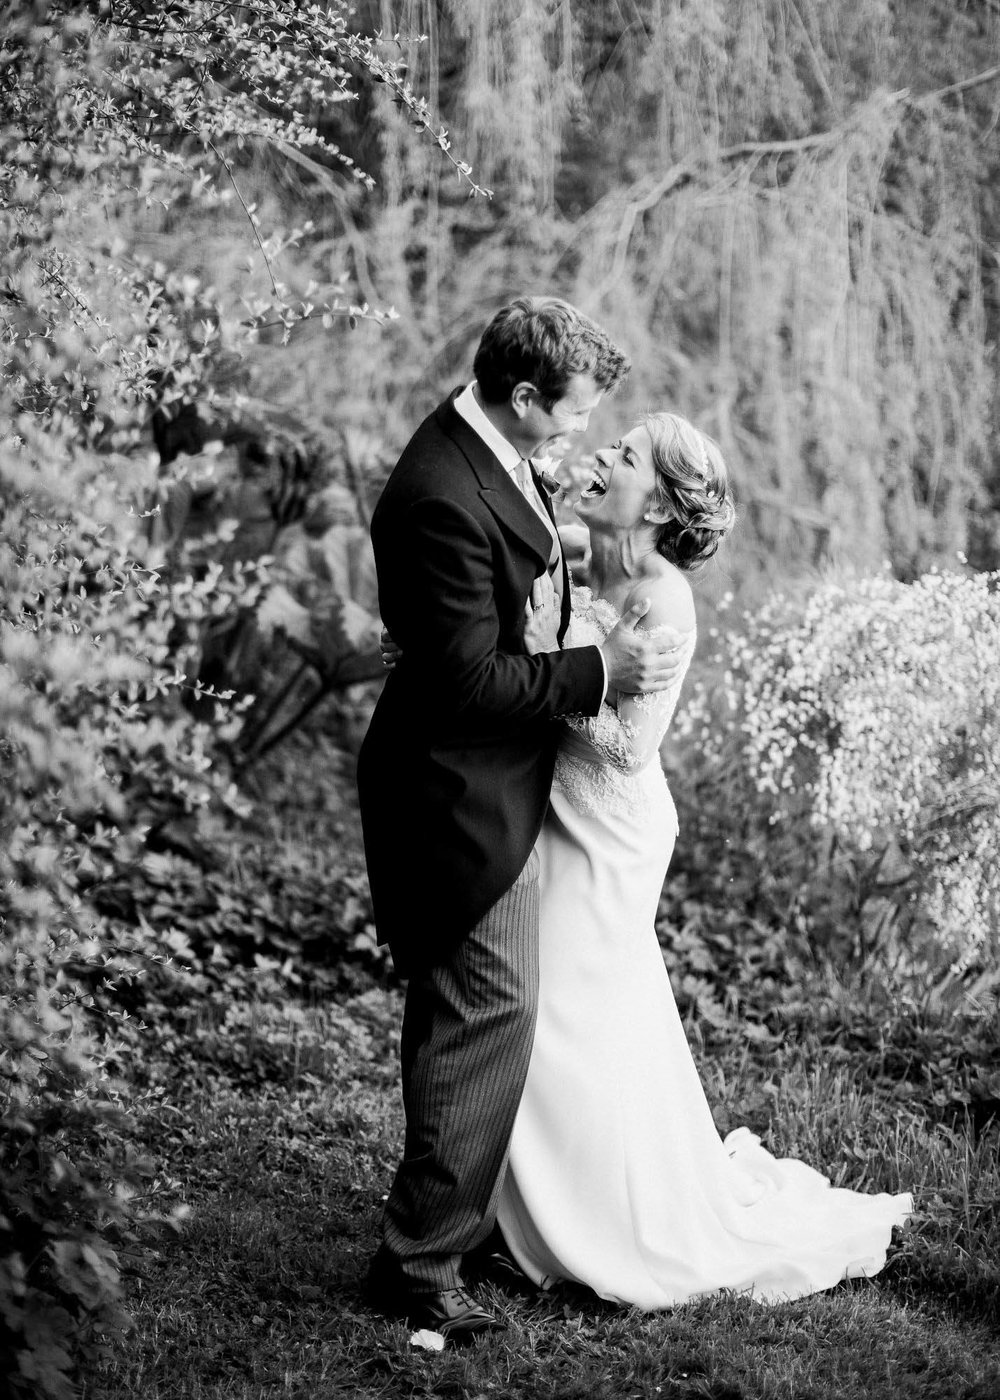 Amy O'Boyle Photography- Destination & UK Fine Art Film Wedding Photographer- English Countryside Wedding-10.jpg